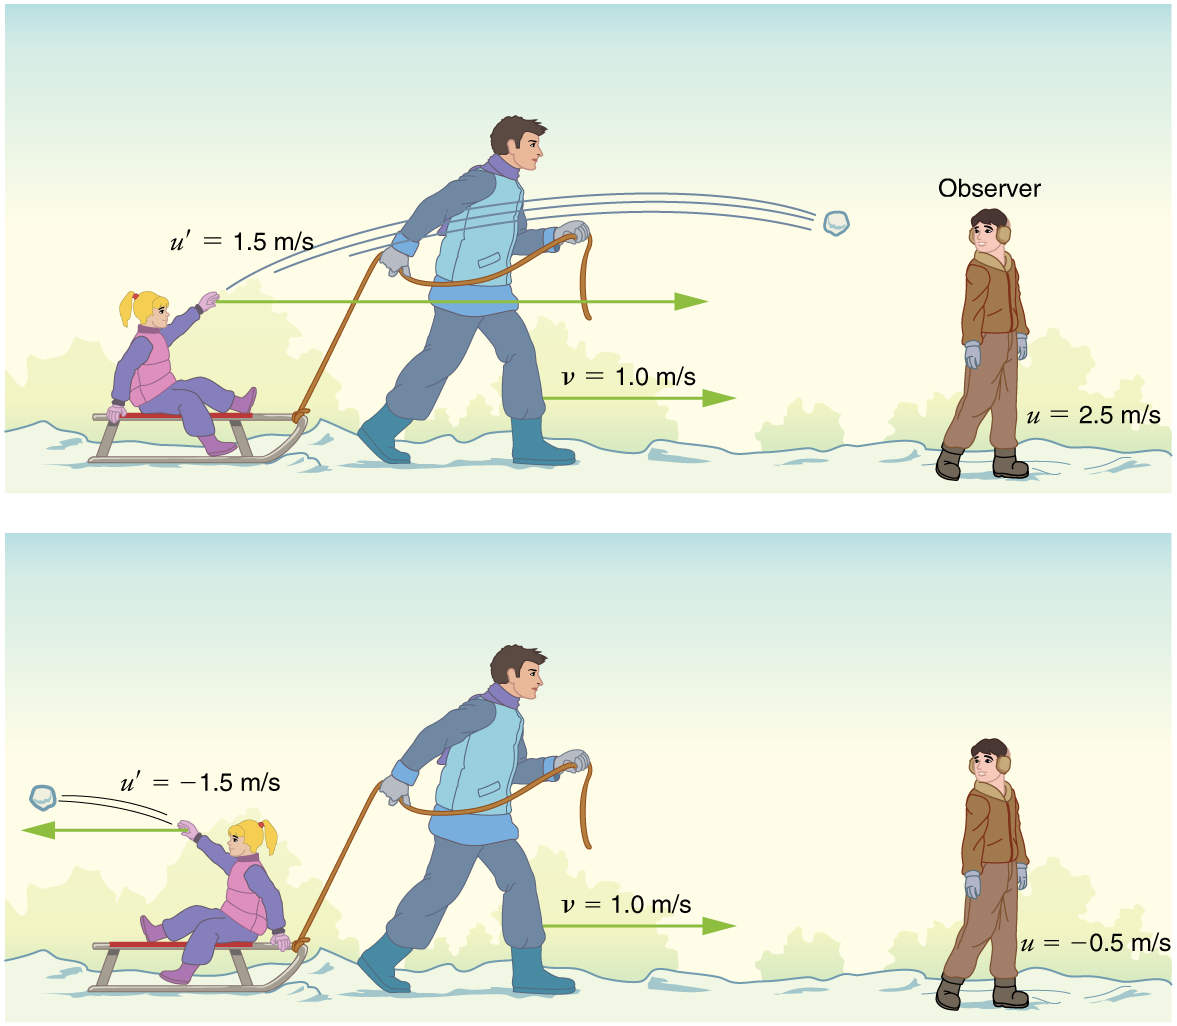 In part a, a man is pulling a sled towards the right with a velocity v equals one point zero meters per second. A girl sitting on the sled facing forward throws a snowball toward a boy on the far right of the picture. The snowball is labeled u primed equals one point five meters per second in the direction the sled is being pulled. The boy is labelled two point five meters per second. In figure b, a similar figure is shown, but the man's velocity is one point zero meters per second, the girl is facing backward and throwing the snowball behind the sled. The snowball is labelled u primed equals negative one point five meters per second, and the boy is labelled u equals negative zero point five meters per second.